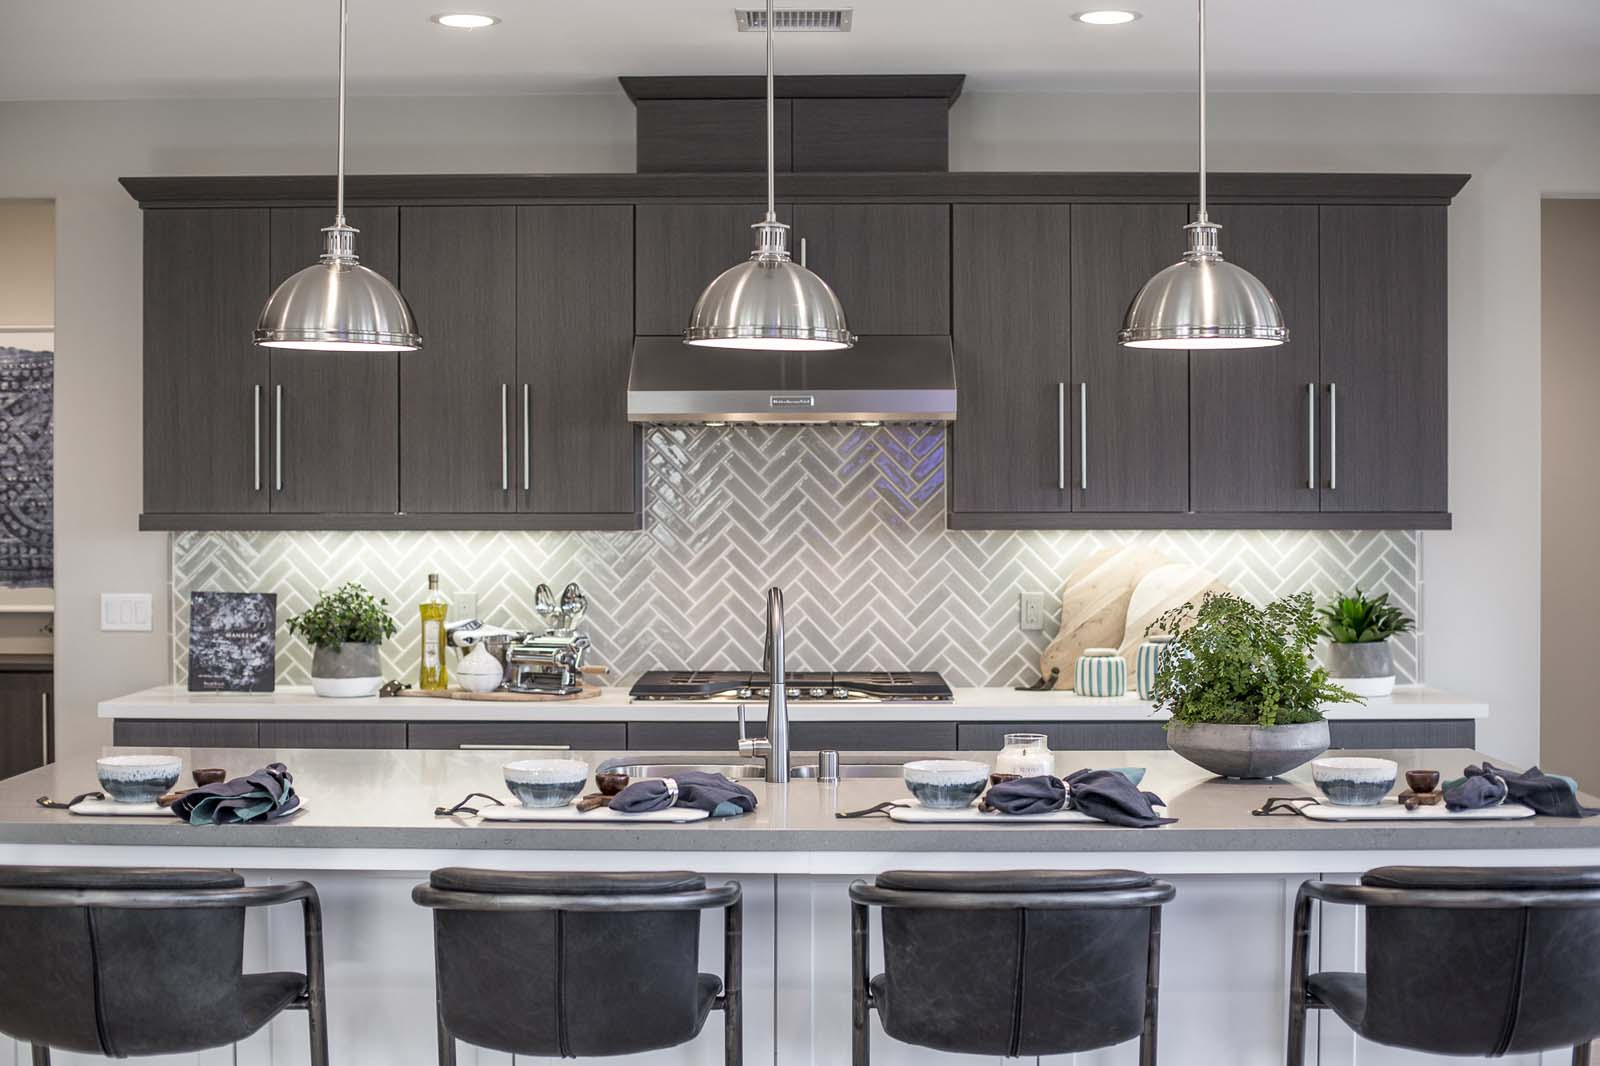 Kitchen Detail Residence 1 | Haciendas at the Village of Escaya in Chula Vista, CA | Brookfield Residential